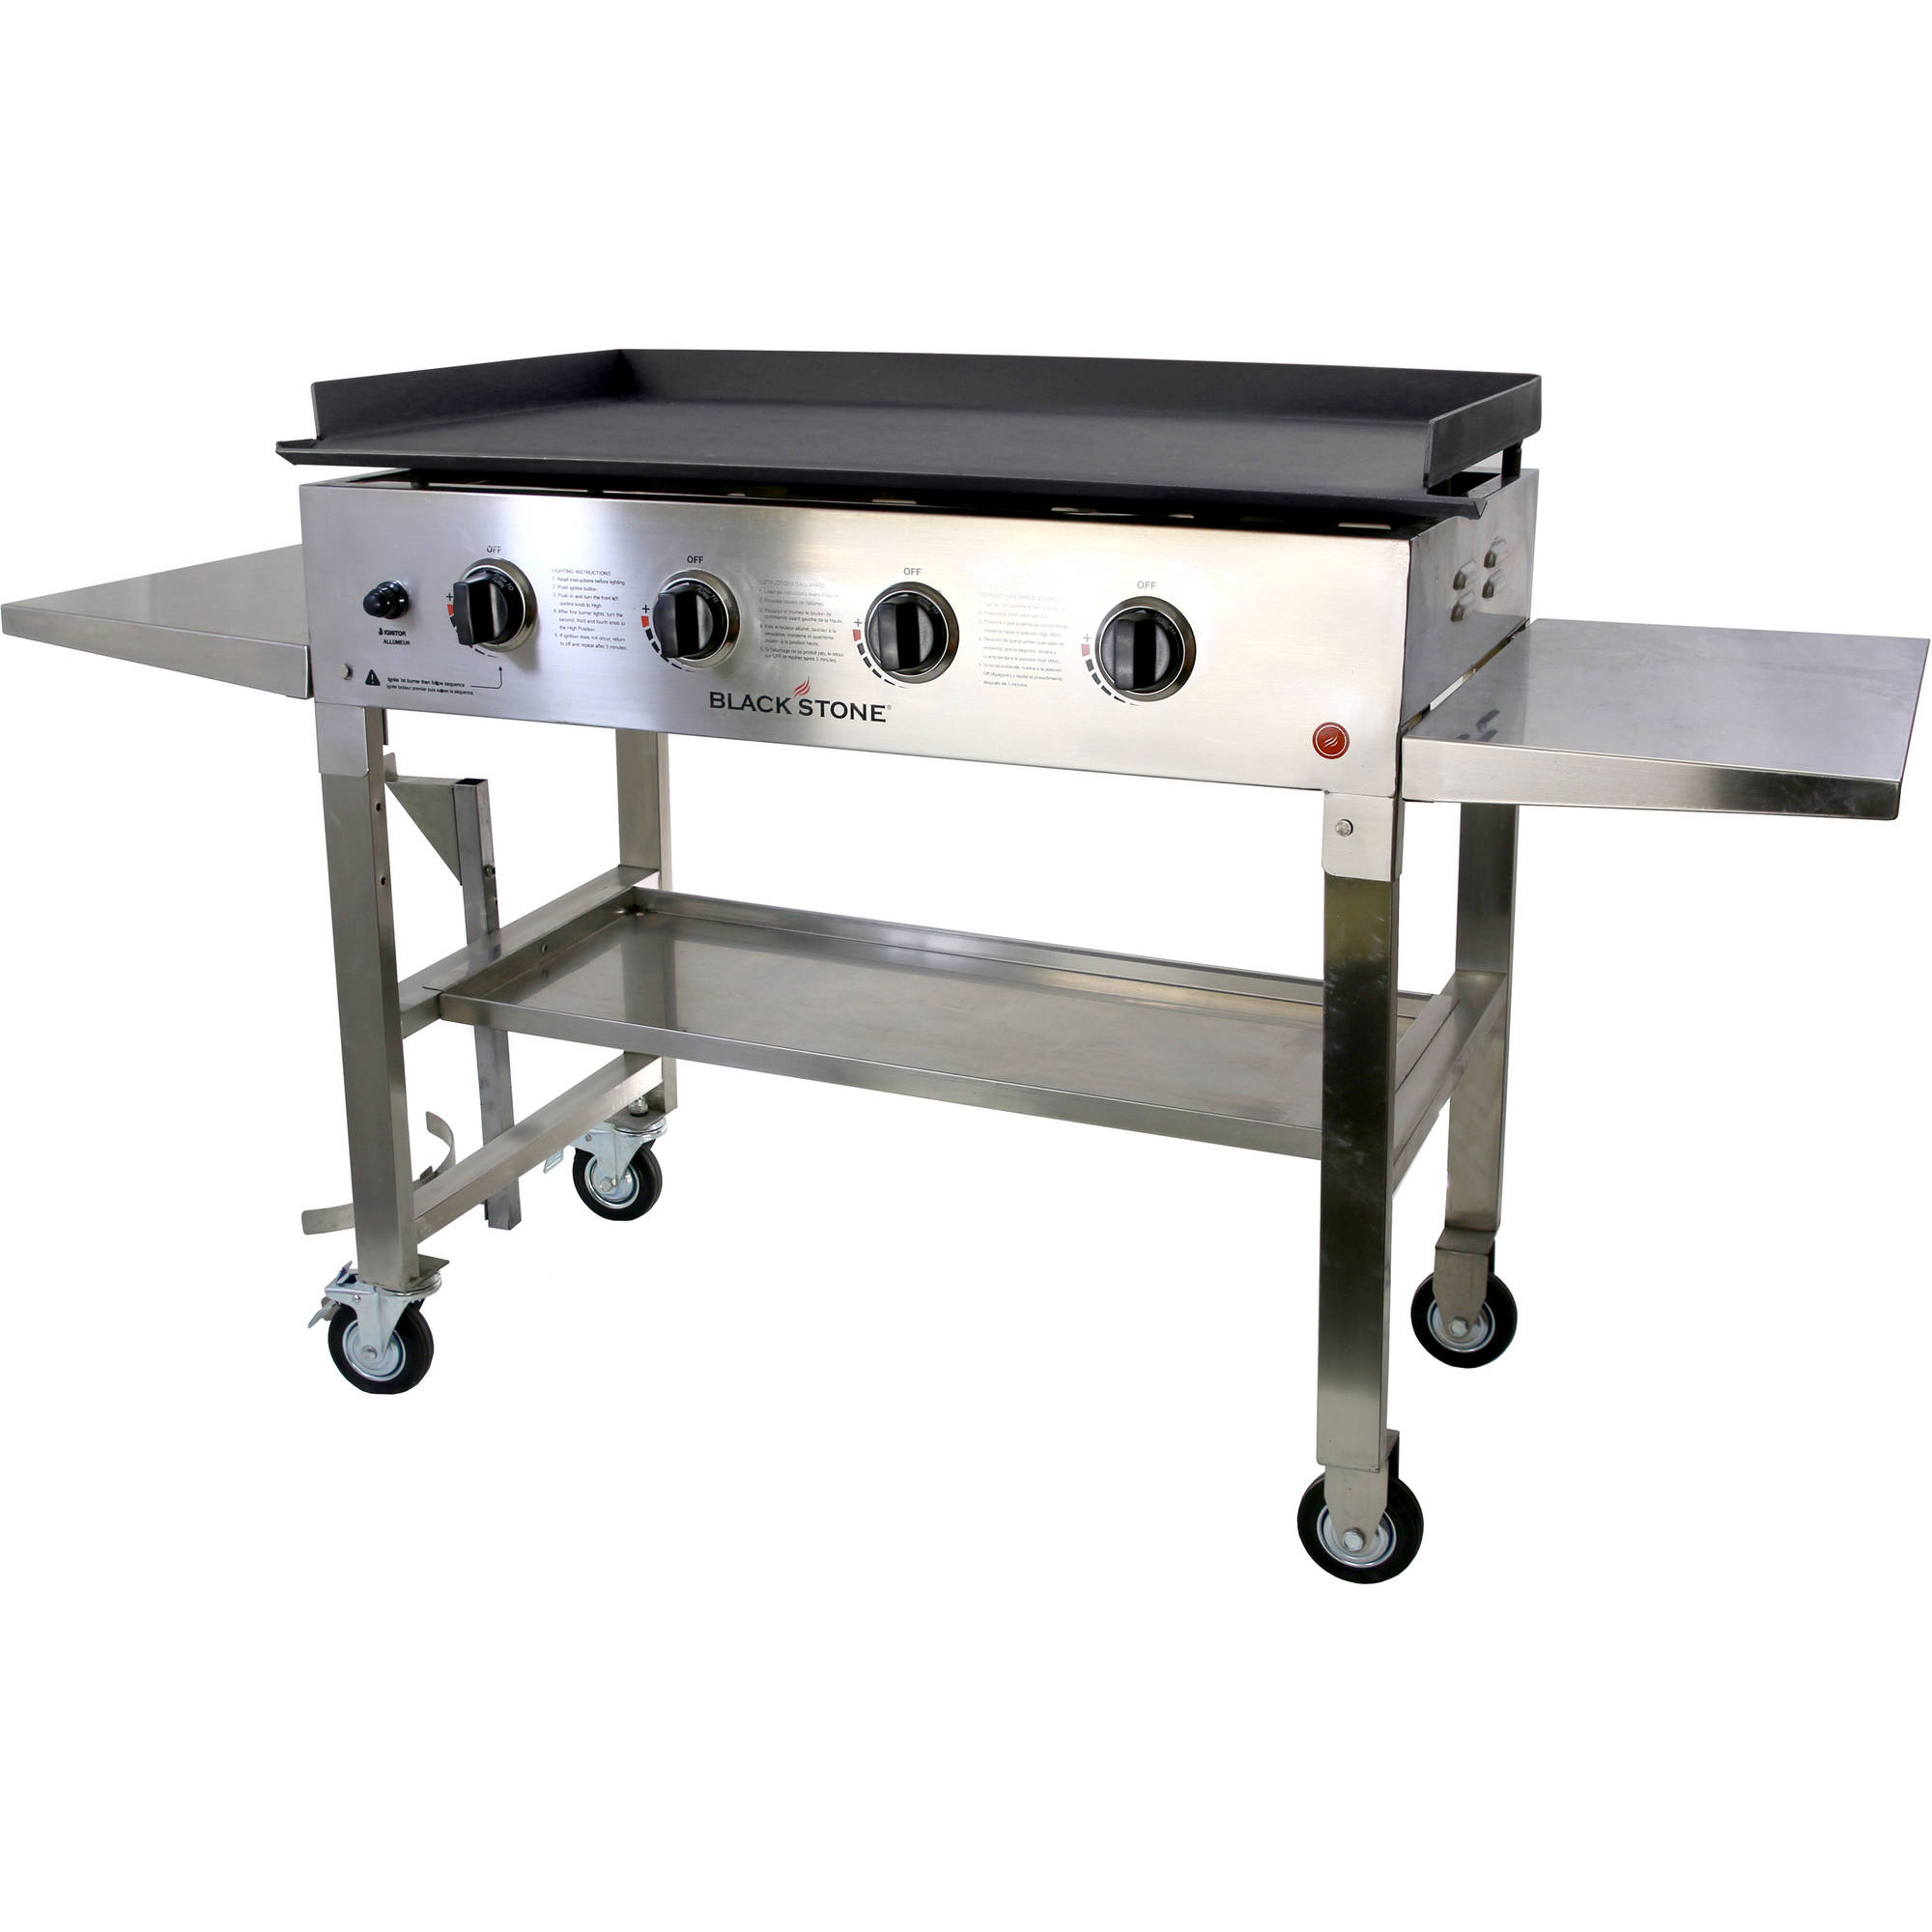 "Blackstone 36"" Stainless Steel Griddle Cooking Station"